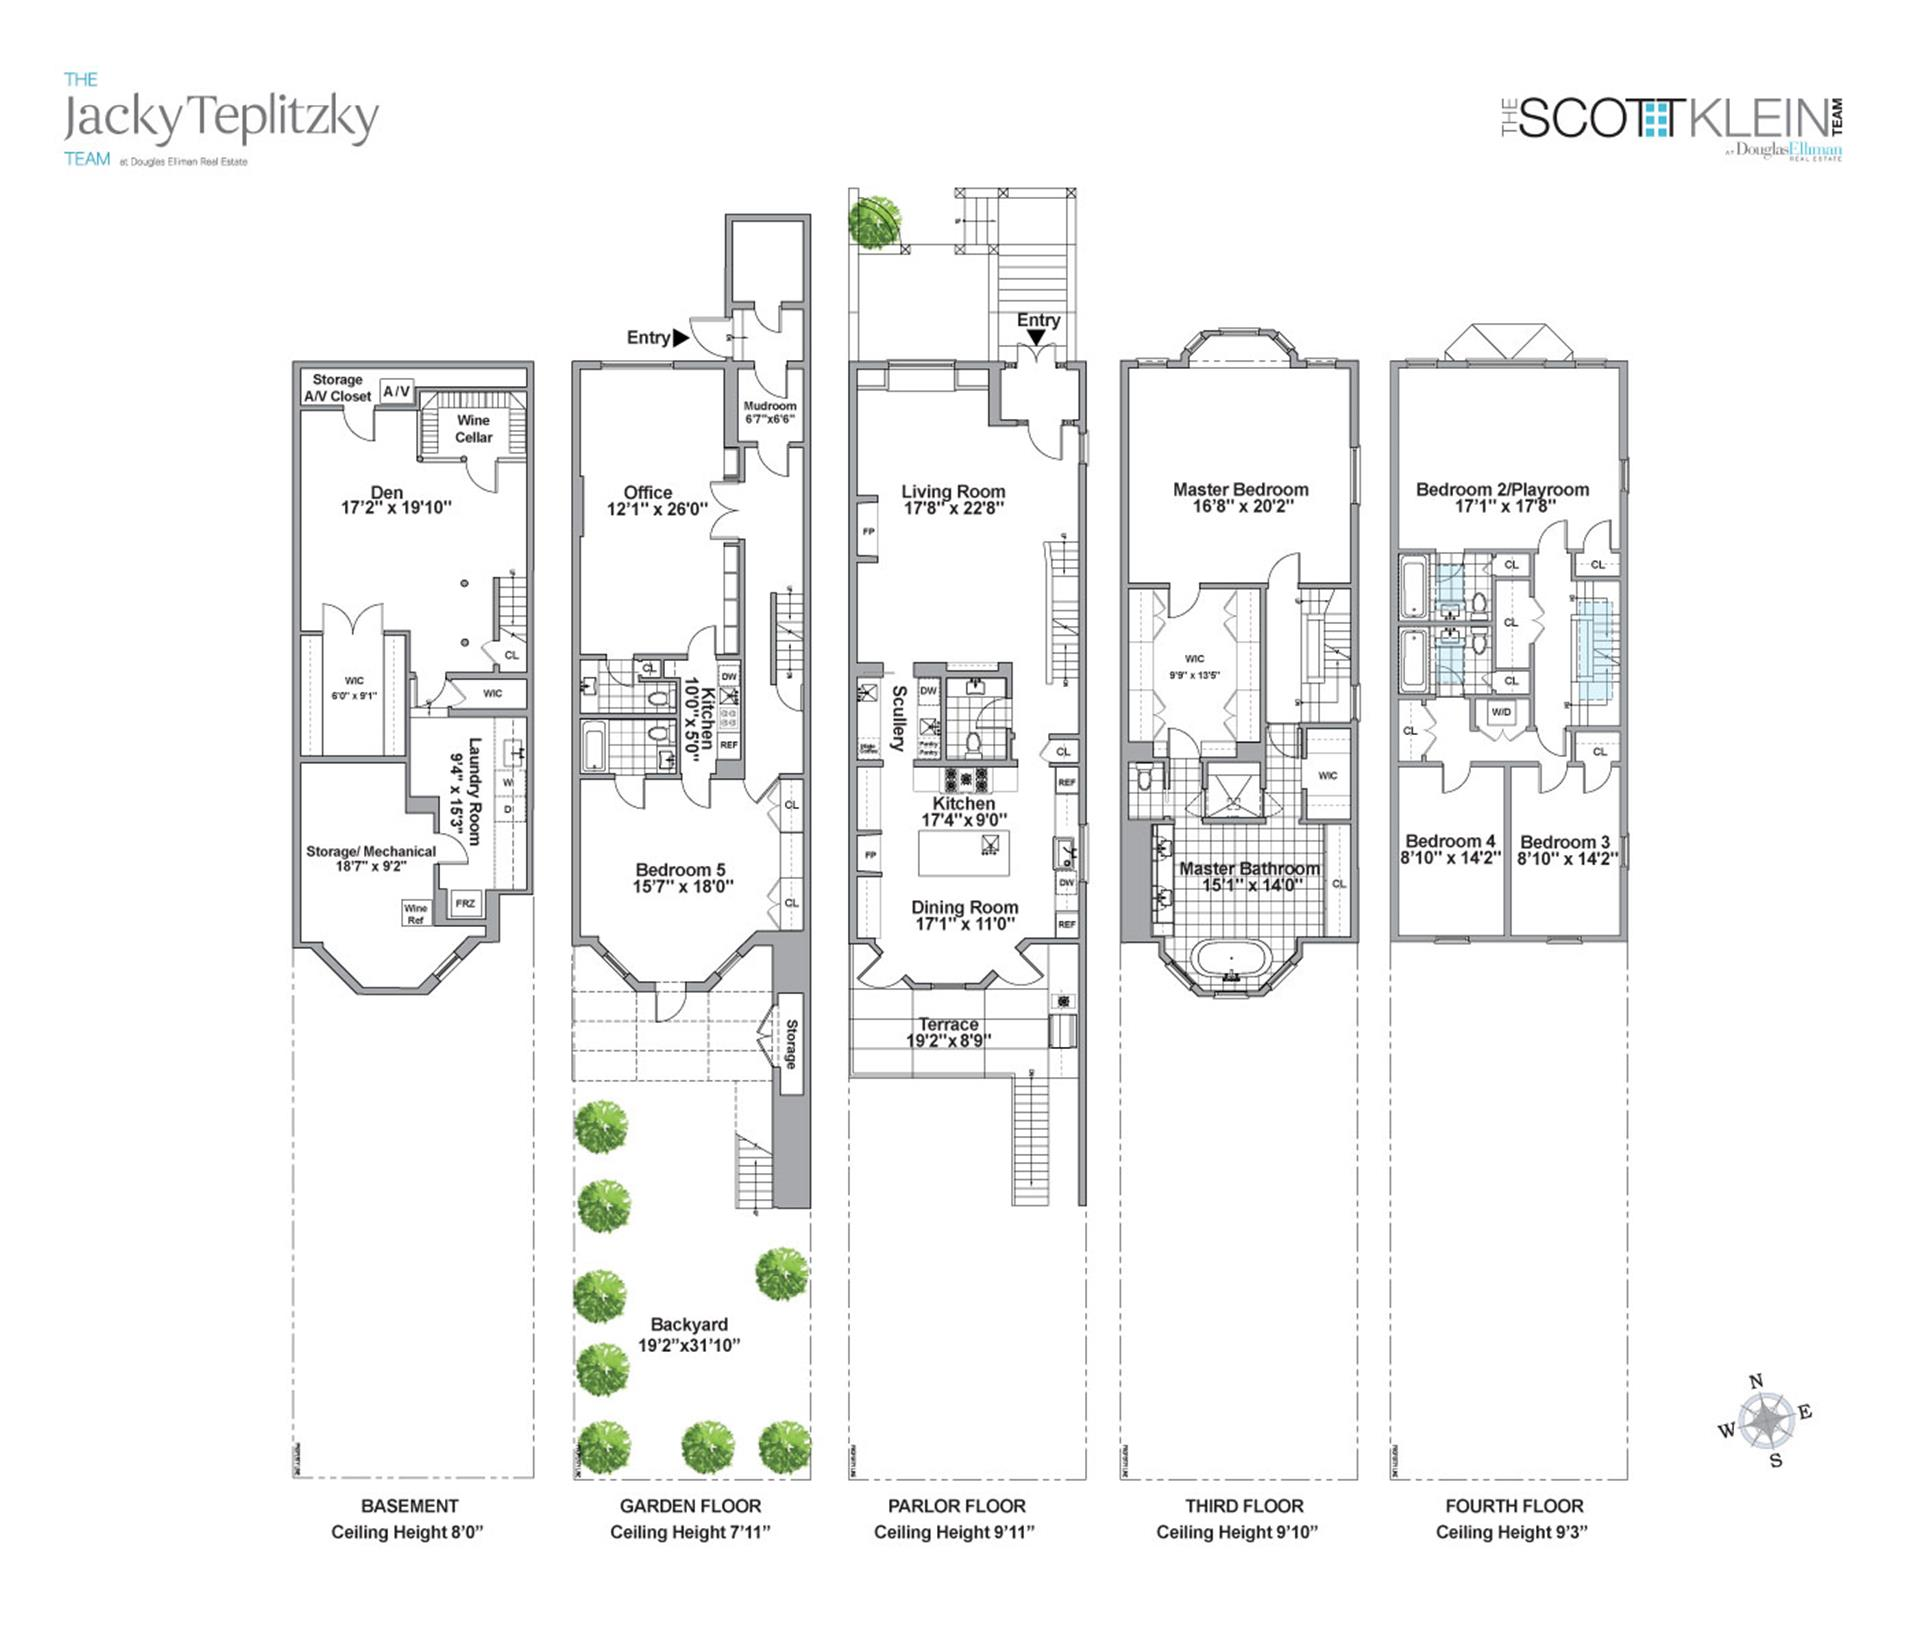 Floor plan of 878 PRESIDENT St - Park Slope, New York